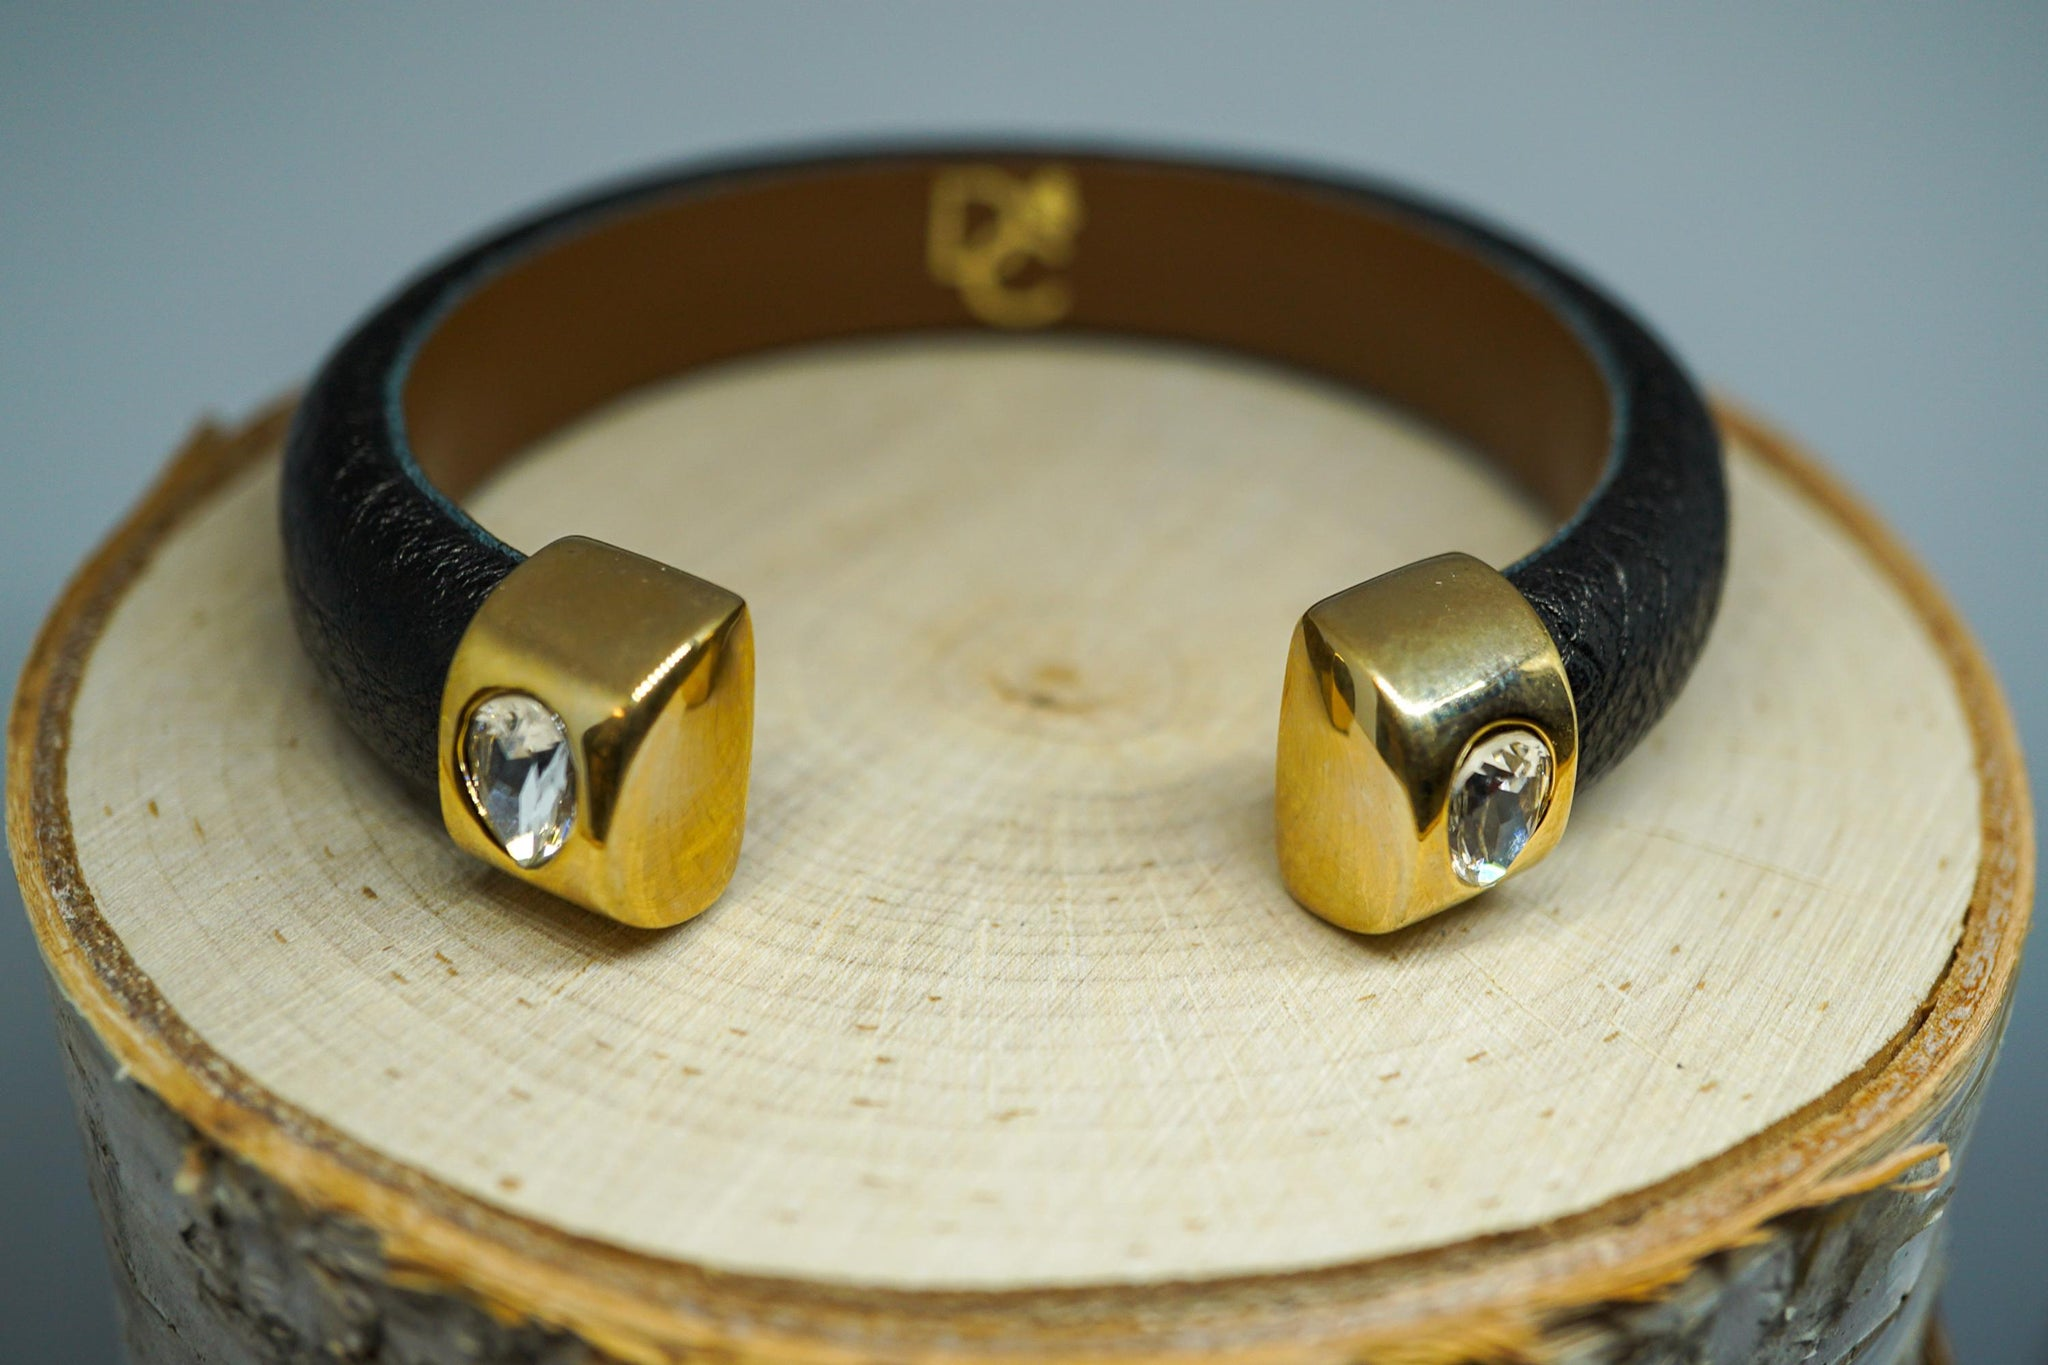 Single Cuff Bracelet with Stones- Black with Gold end cap